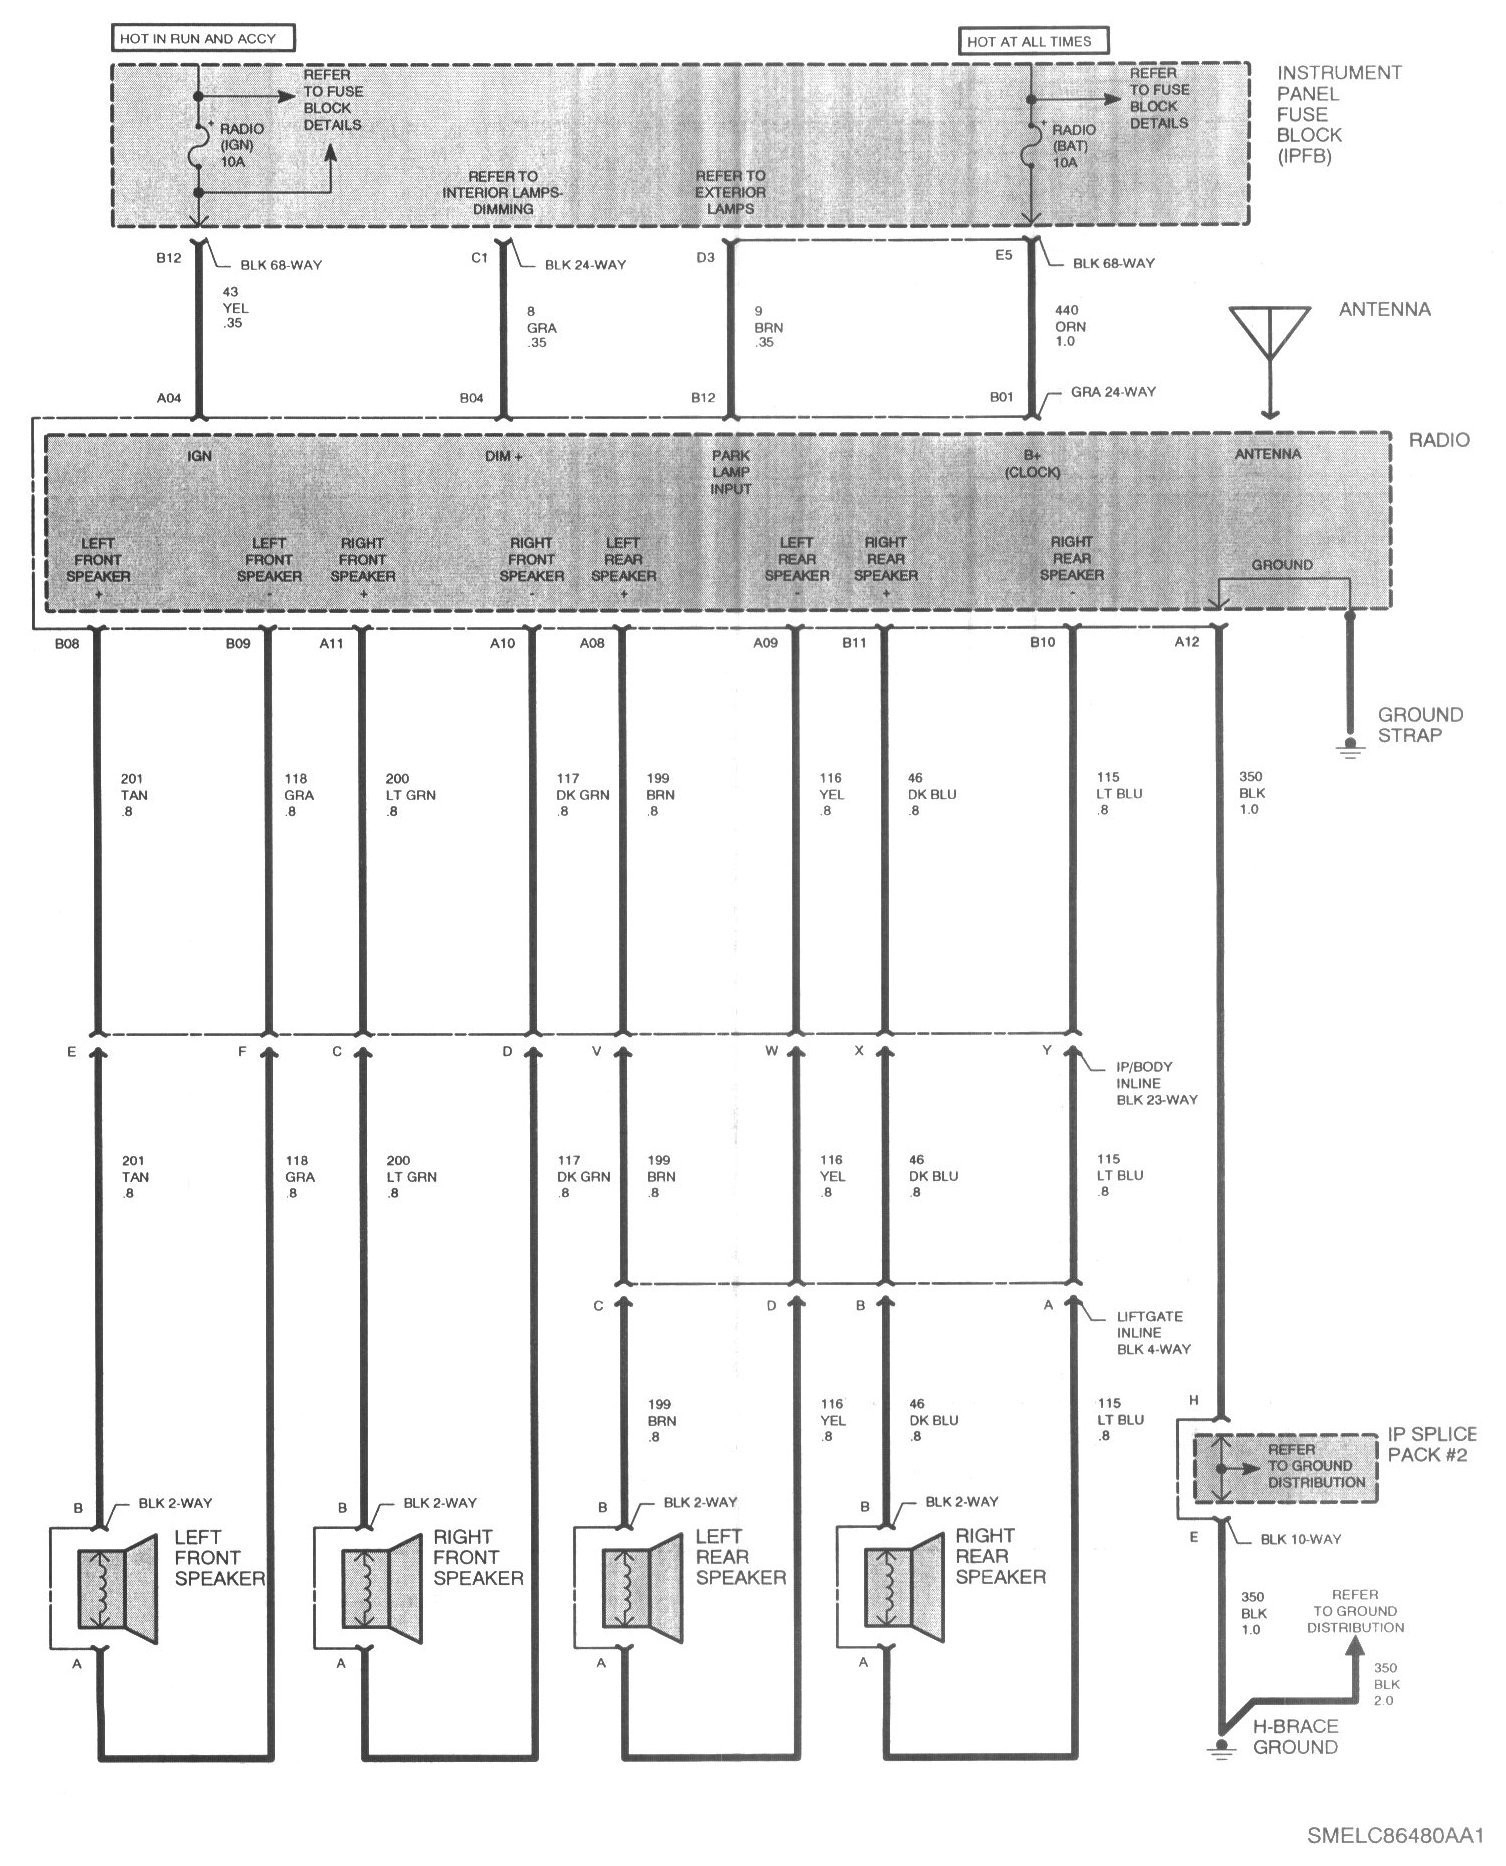 saturn stereo wiring diagram Download-2005 Chevy Trailblazer Stereo Wiring Diagram Lovely Attractive 200 Saturn Ion Radio Picture Collection 1 18-n